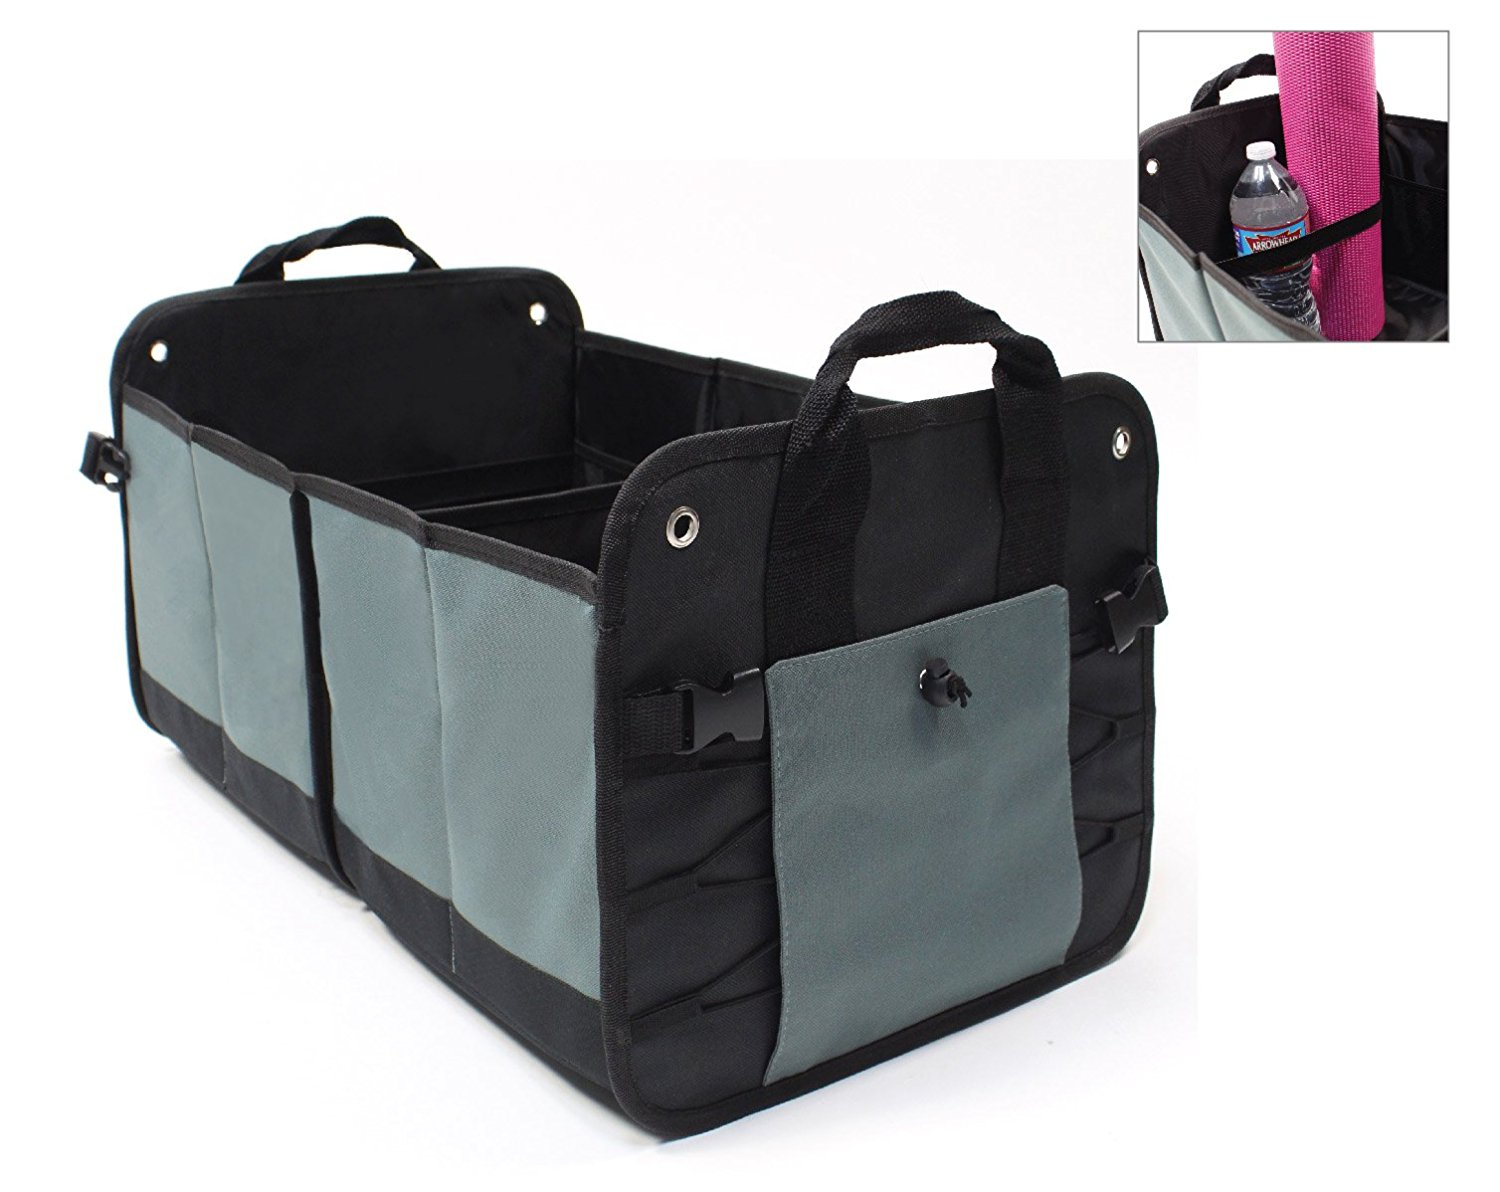 Lk S Collapsible Trunk Organizer Multipurpose Cargo Storage Organizer For Car Suv Or Minivan Foldable Heavy Duty Durable With 12 Interior Pockets As Well As Cargo Straps In Black Walmart Com Walmart Com